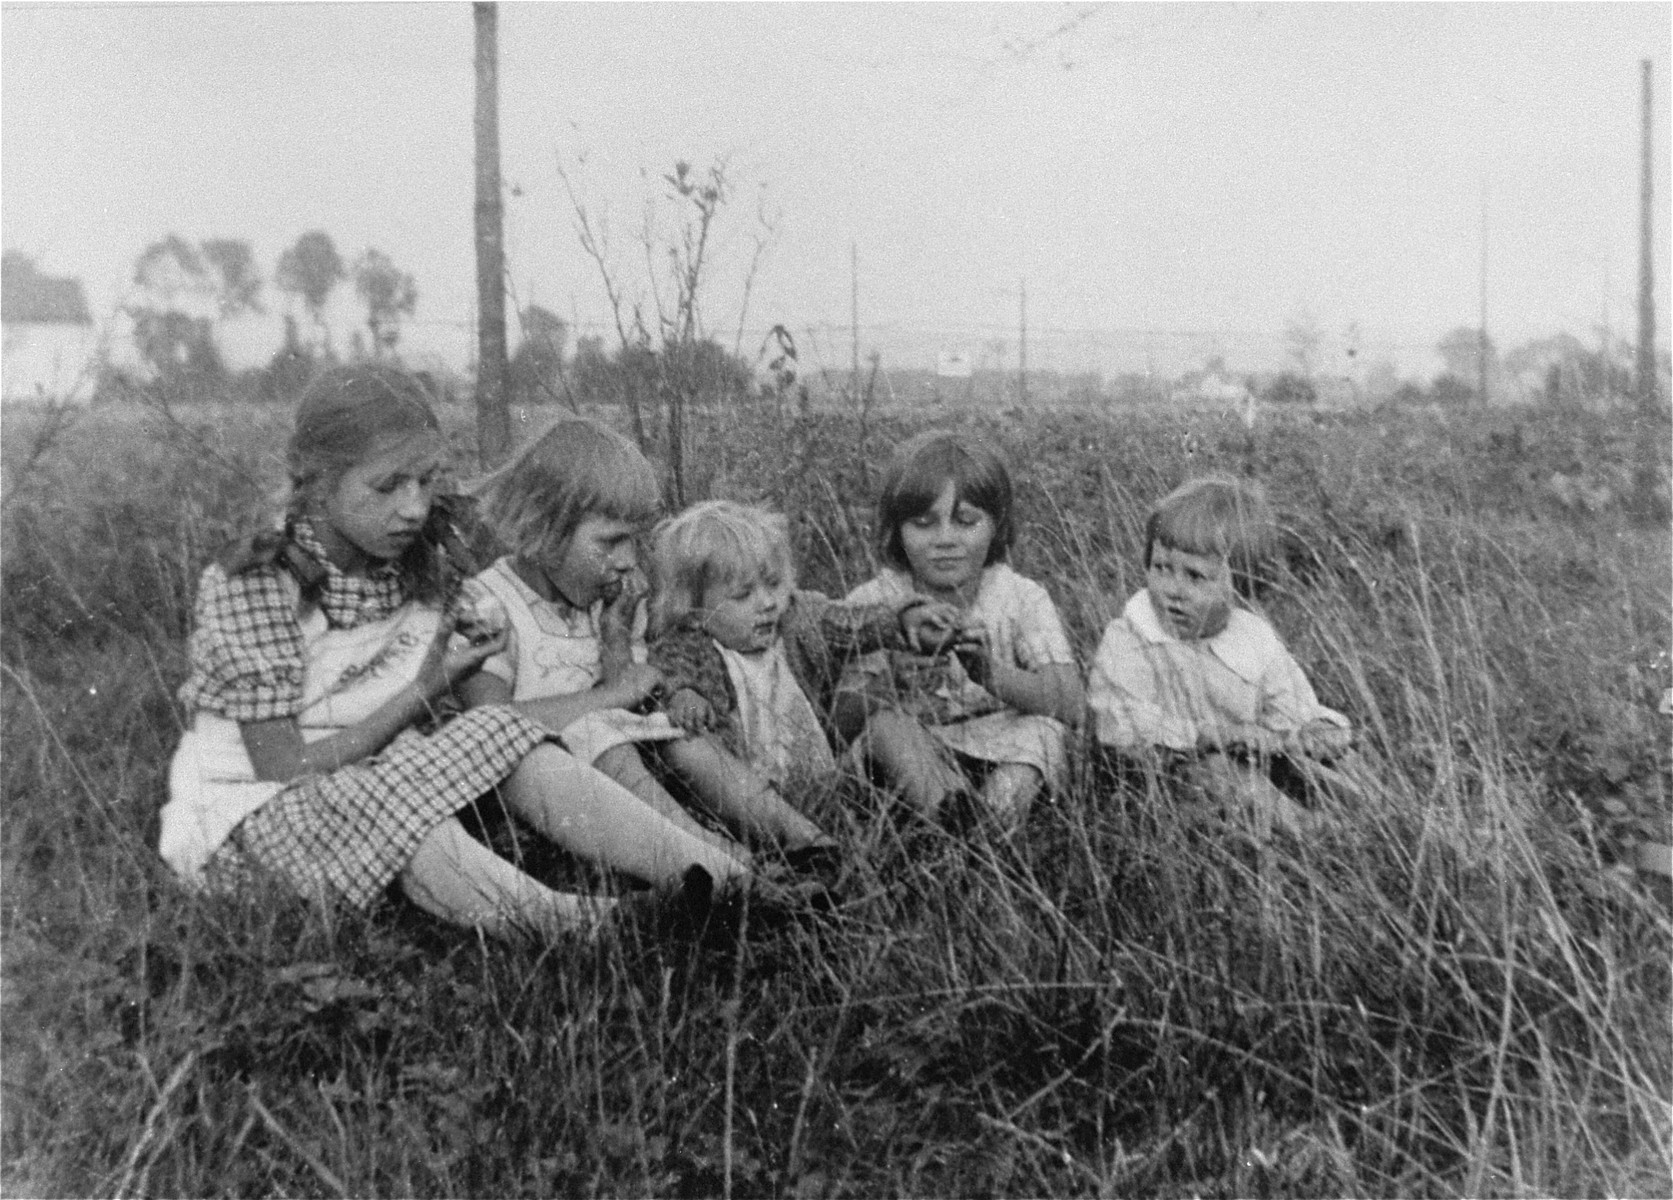 The Kusserow family children with friends in Bad Lippspringe.